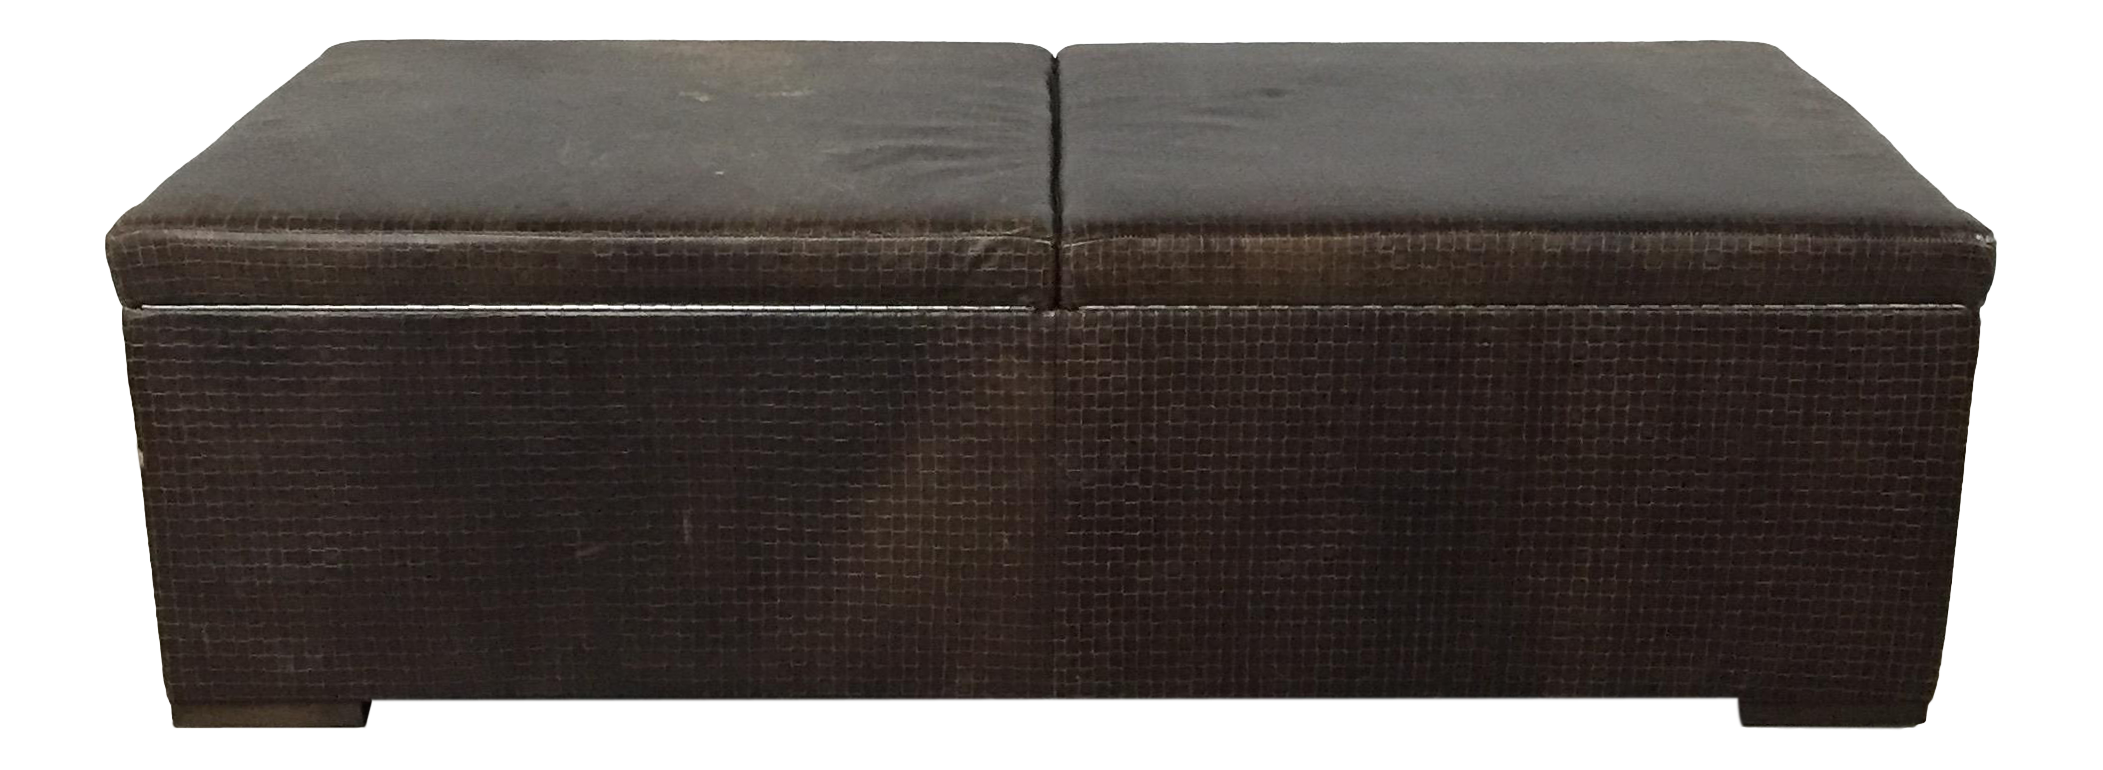 Woven Leather Storage Ottoman By Edelman